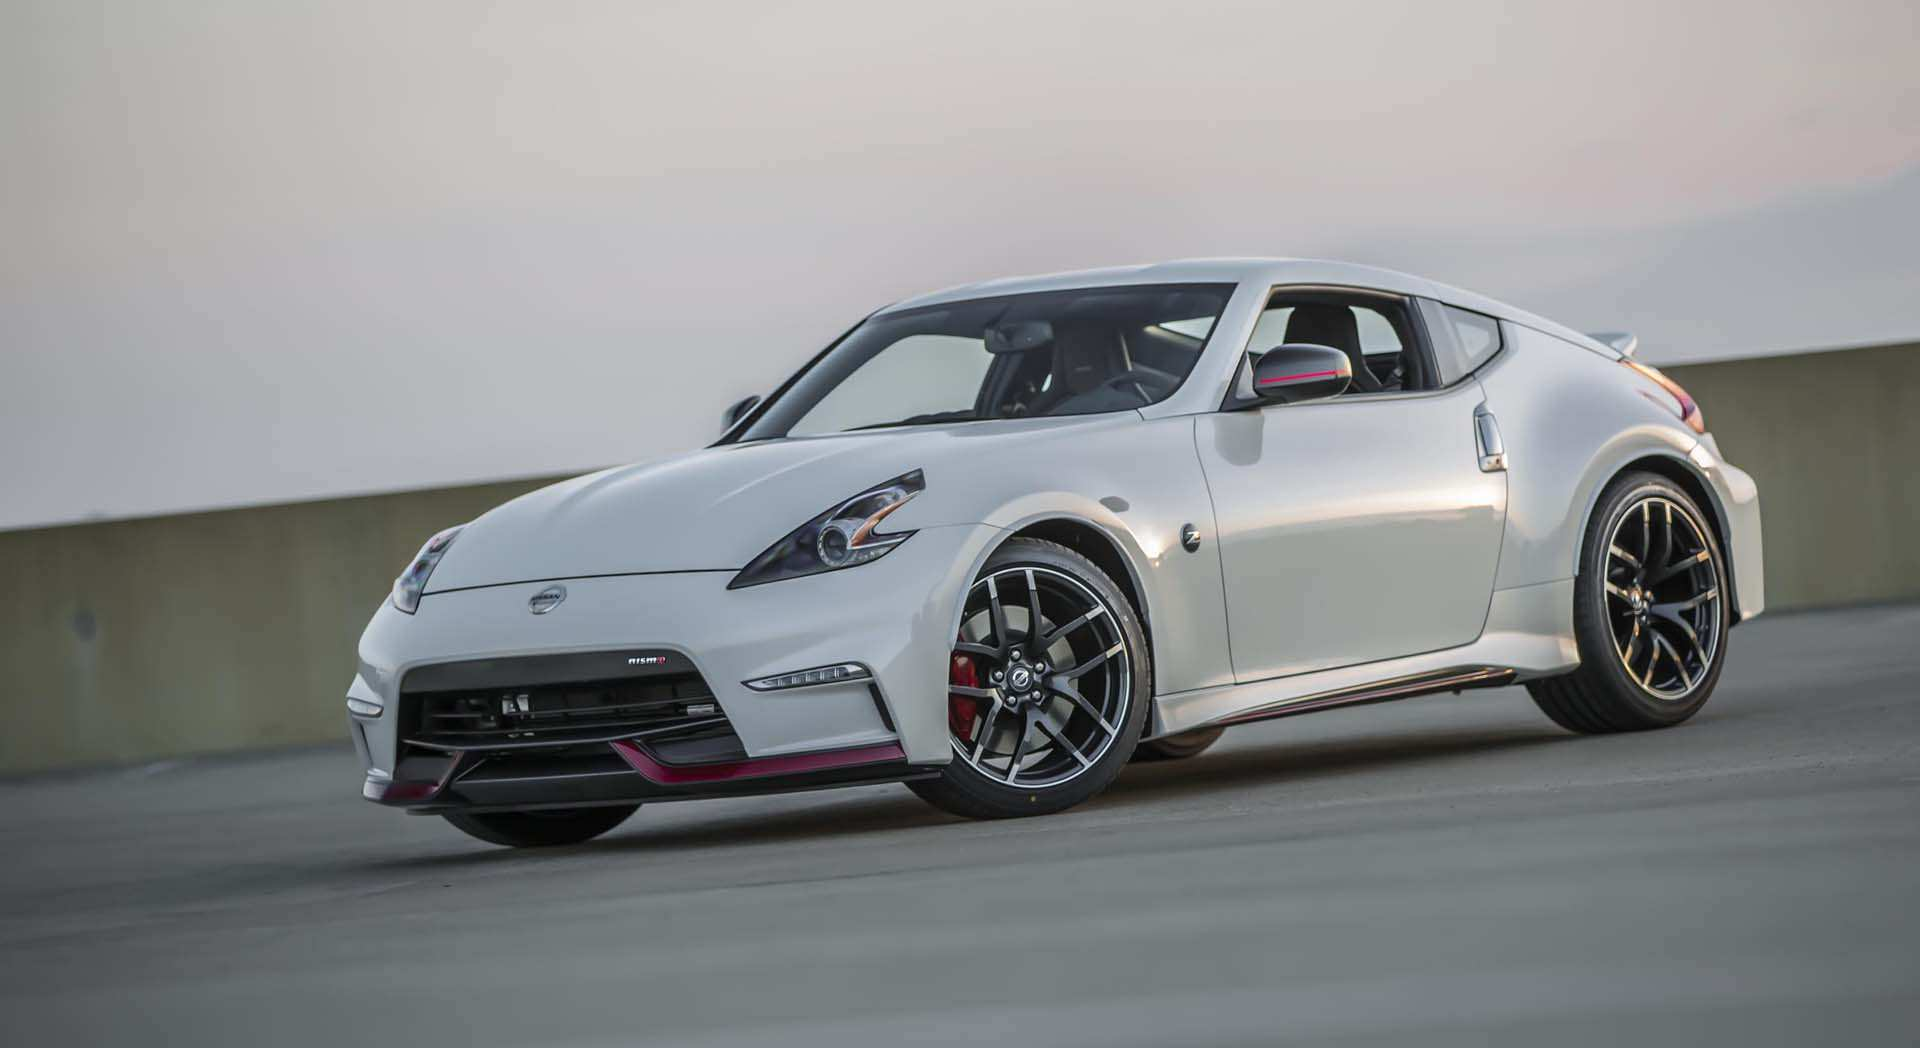 71 All New 2019 Nissan Z Car Release Date And Concept